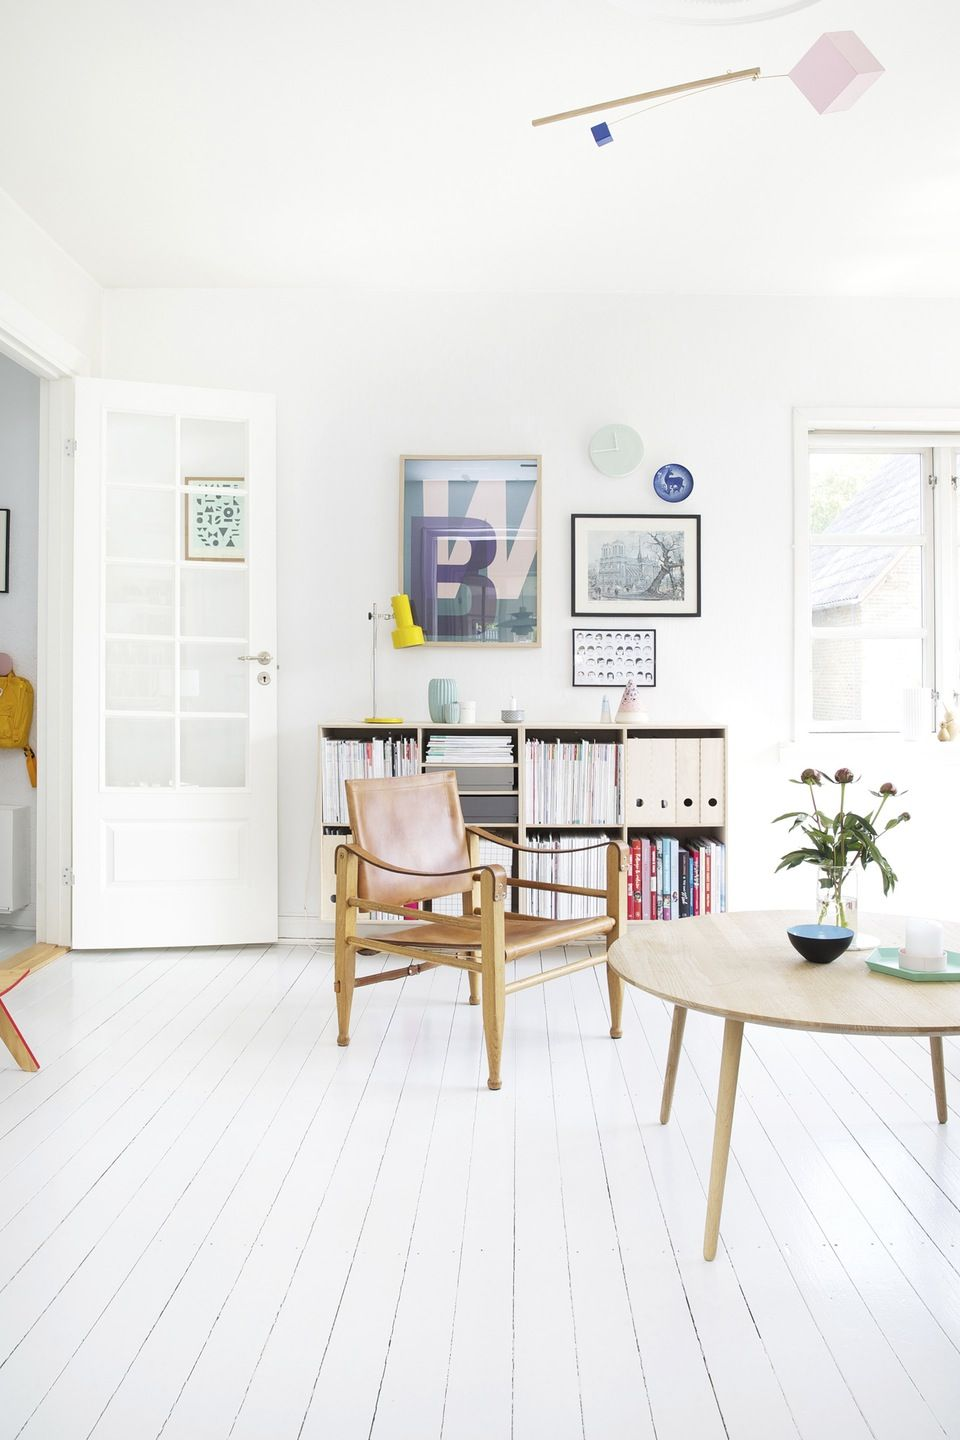 Design attractor white interior with an colorful retro accents - Room Bloggerens Kul Rte Murermestervilla Boligmagasinet Dk Scandinavian Stylescandinavian Interior Designscandi Styleaccent Colors Danisheswhite